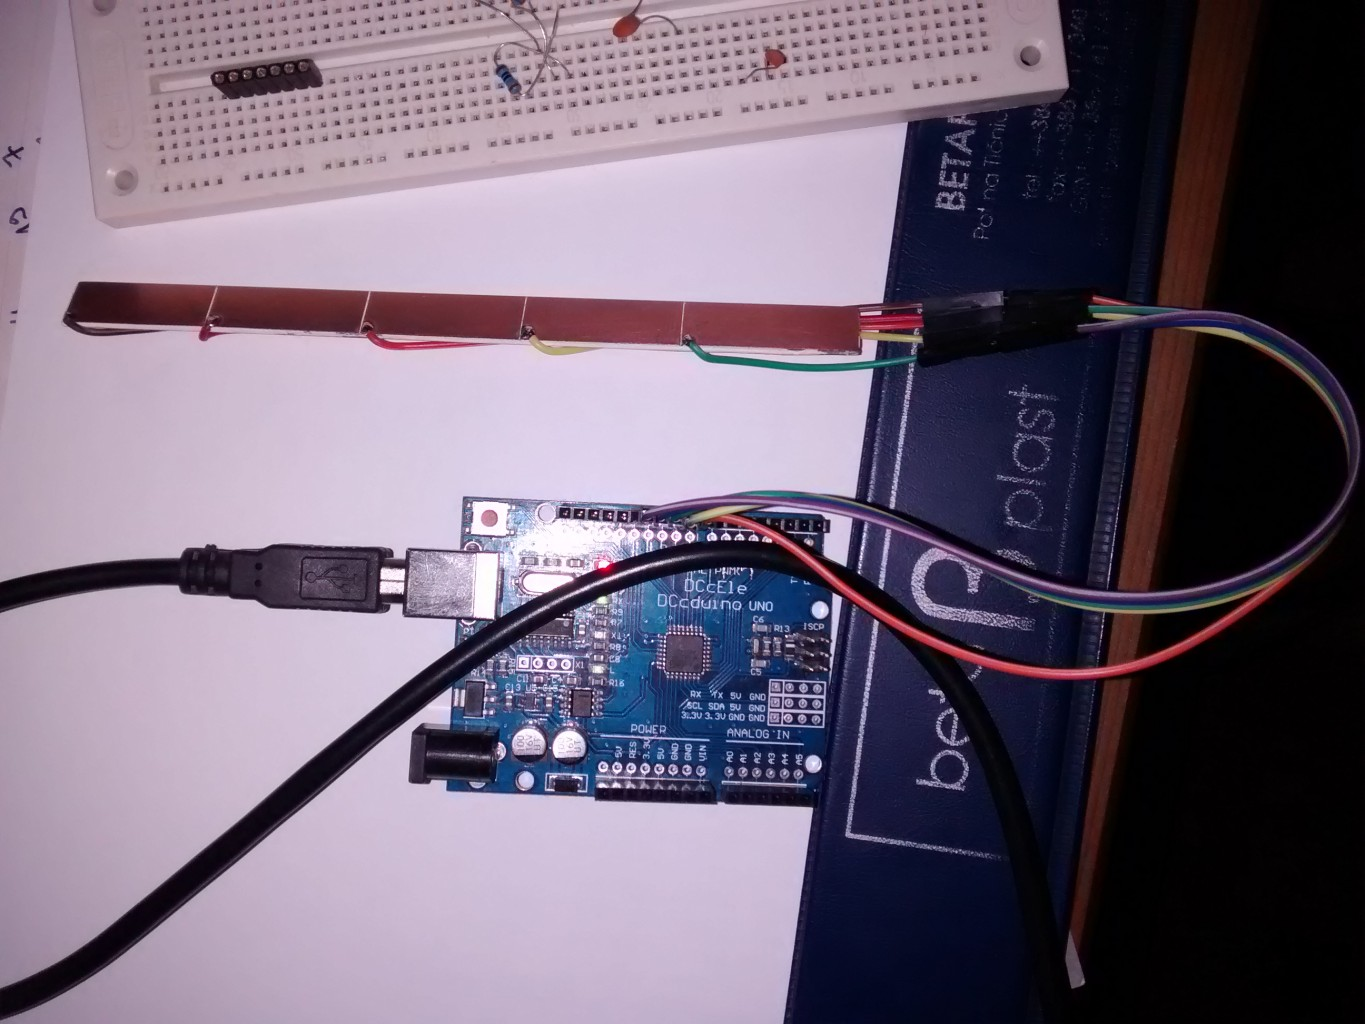 Arduino capacitive sensor and the friction drum